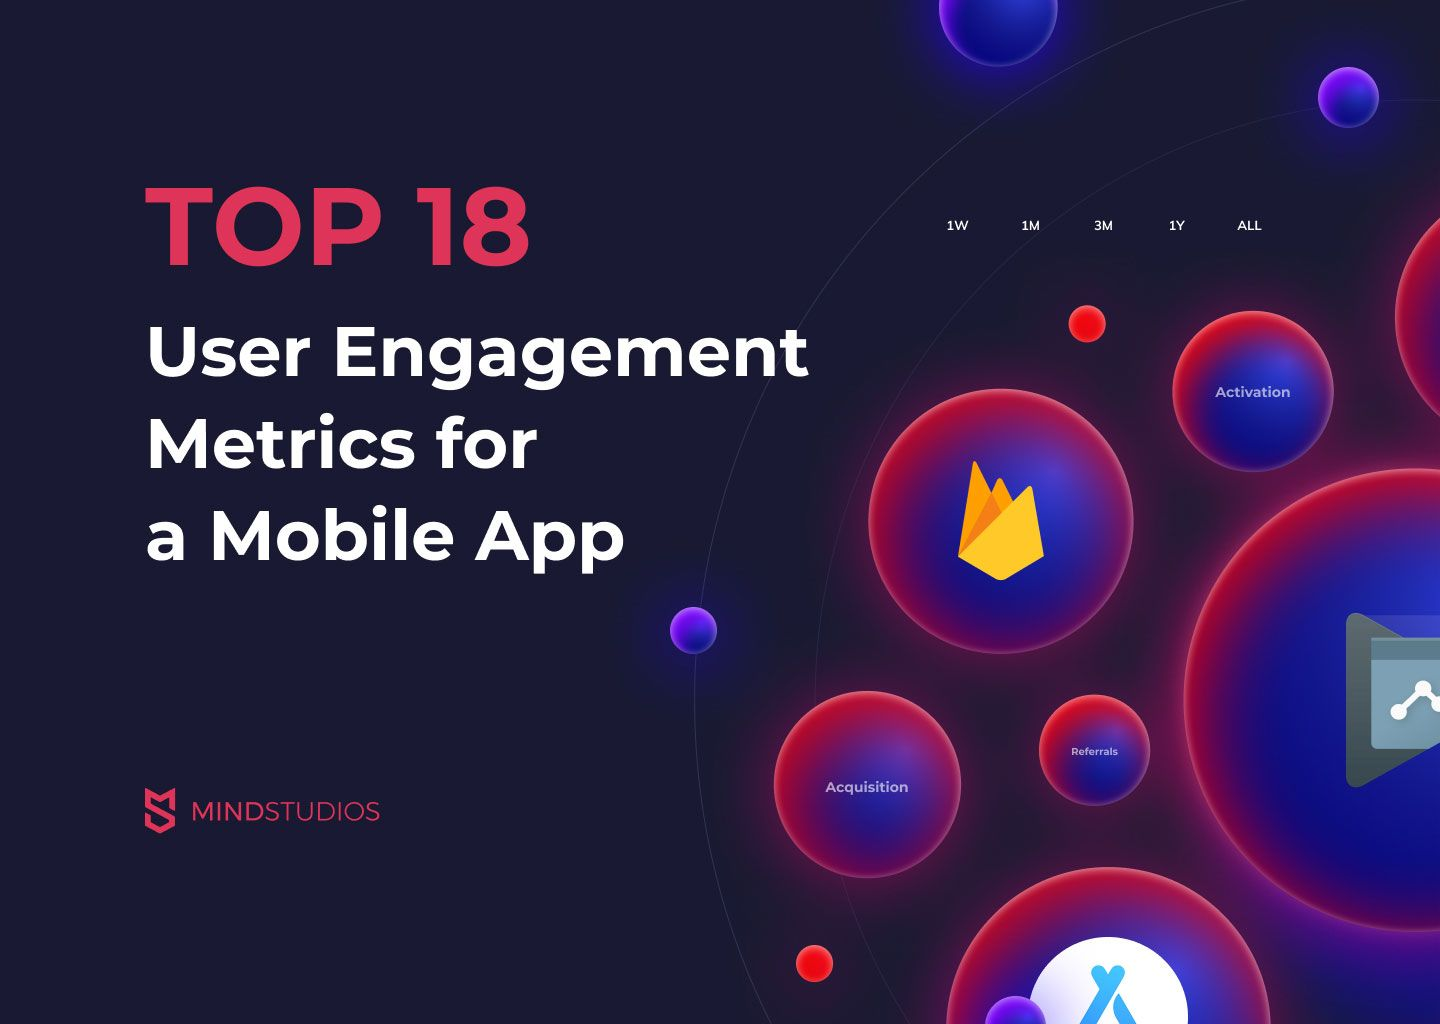 Top 18 User Engagement Metrics for a Mobile App